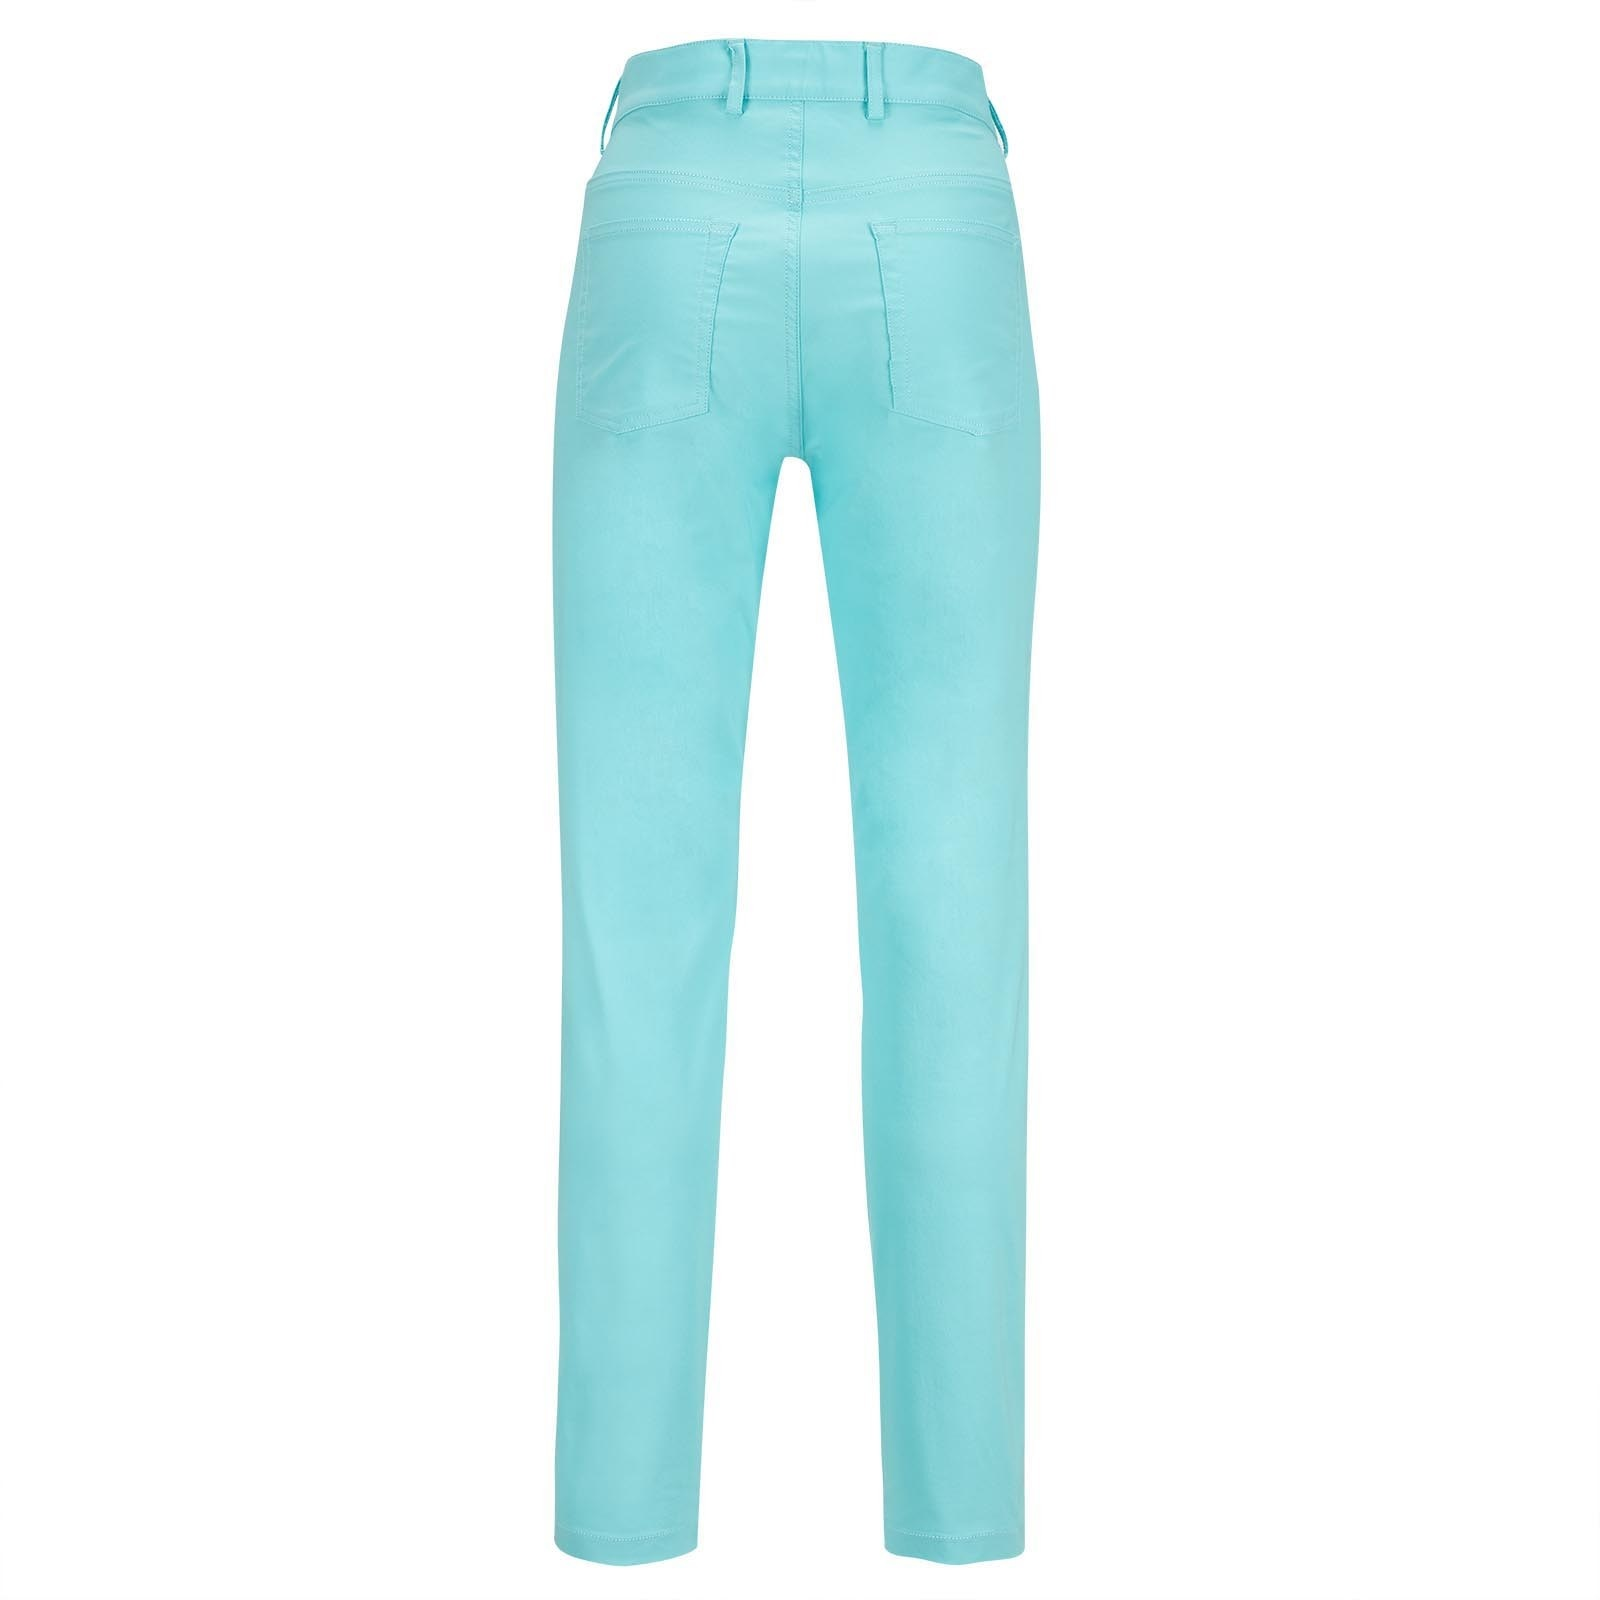 Golfino Sofia 7/8 Trouser Key Largo